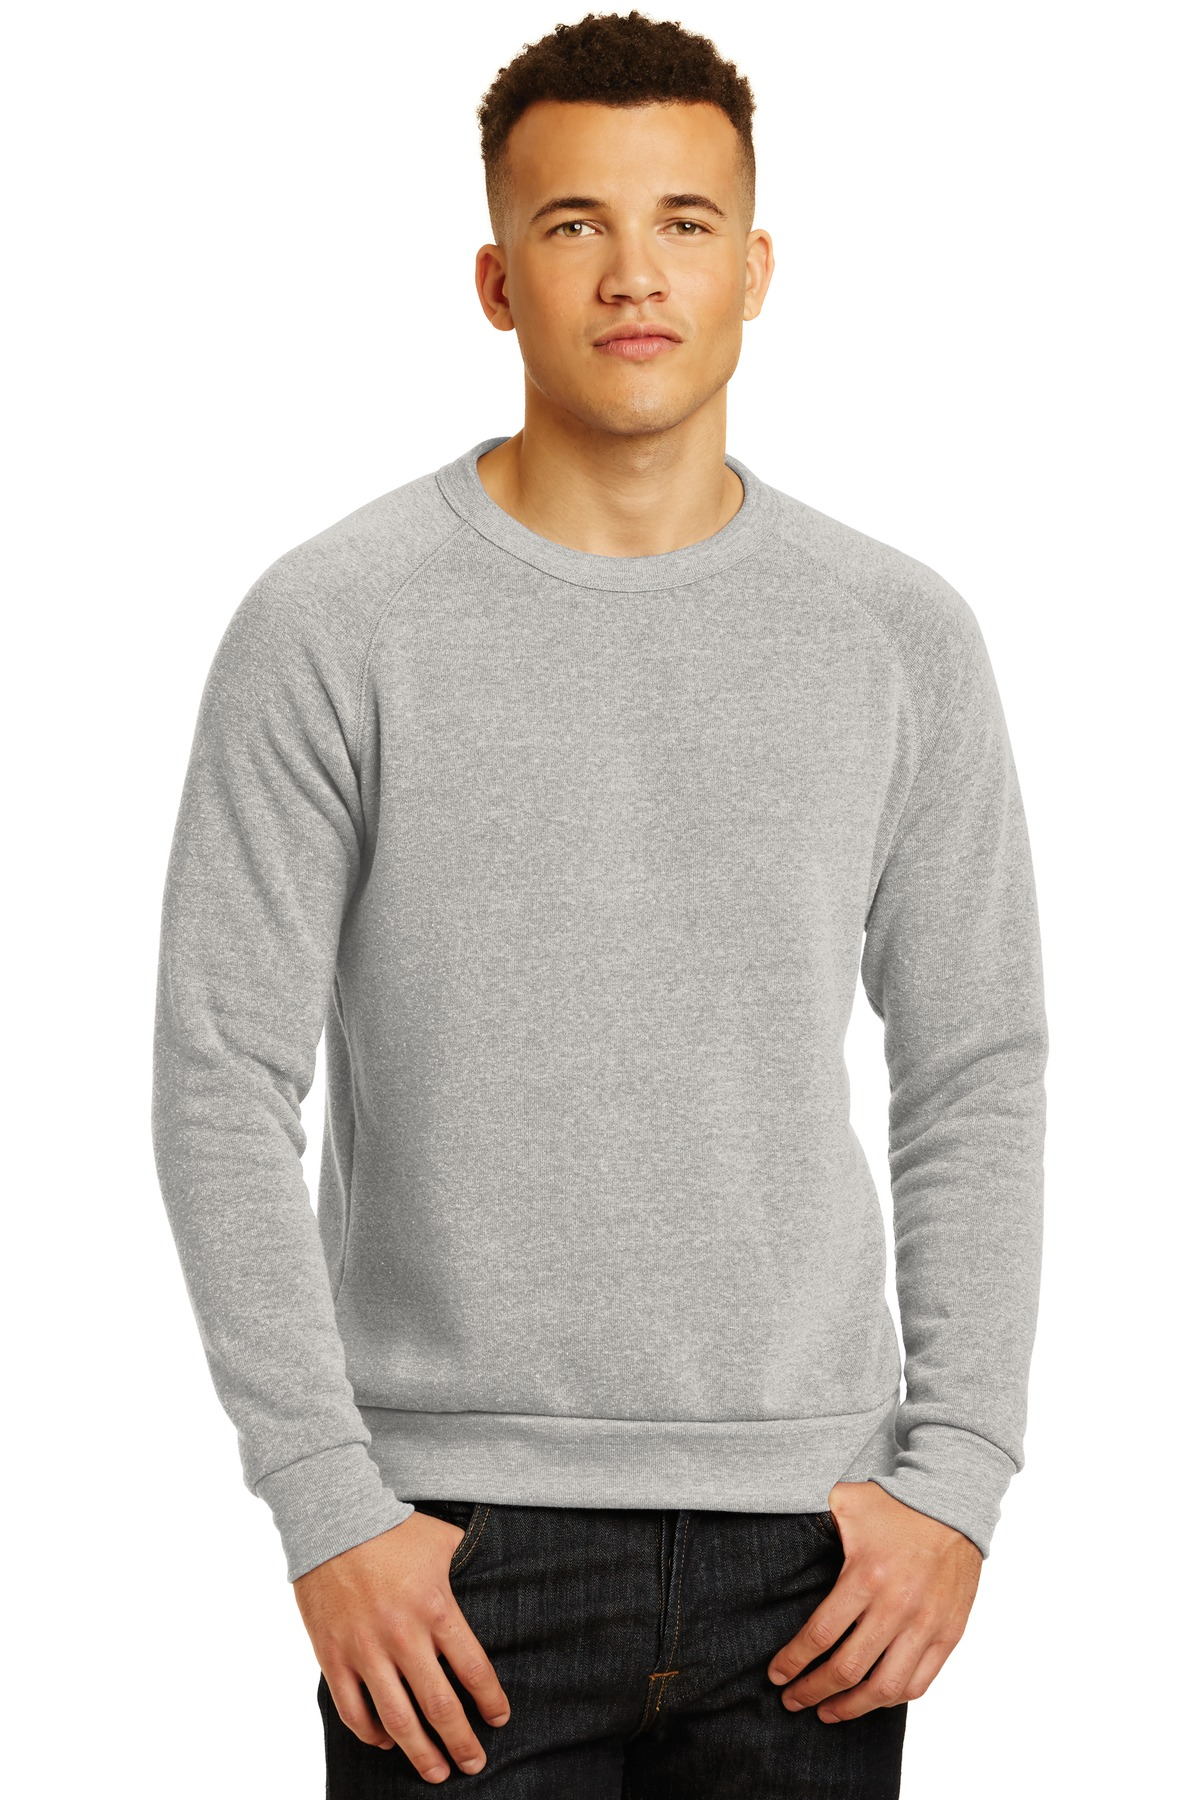 Alternative Champ Eco ™ -Fleece Sweatshirt. AA9575 - Eco Oatmeal Grey